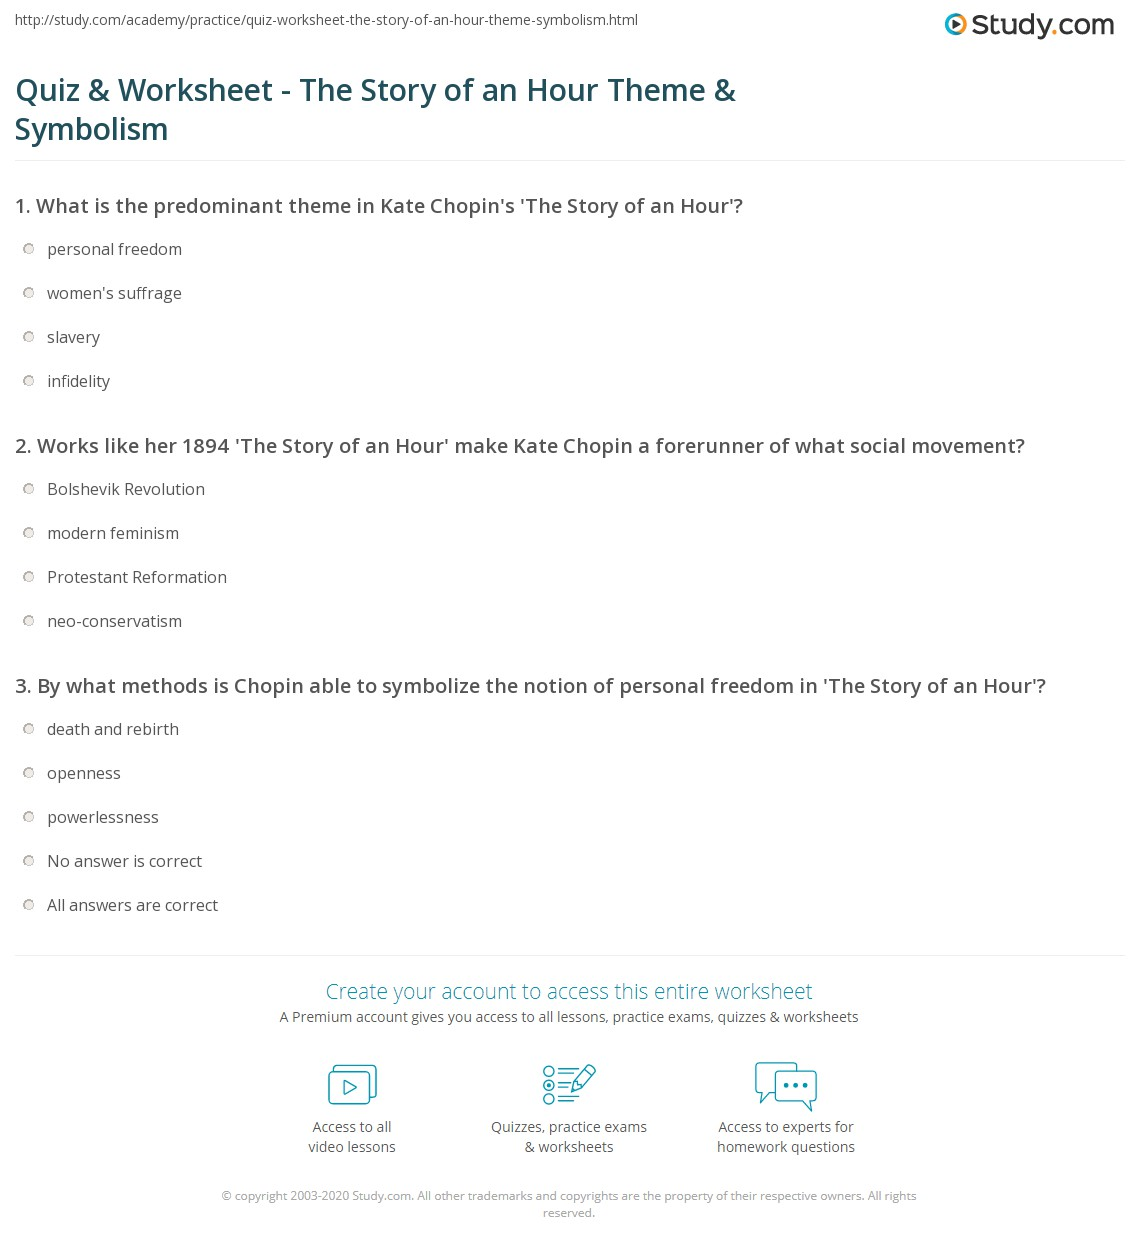 feminism on the story of an hour Teach the story of an hour, with ideas from this resource guide, including discussion questions, character analysis, literary devices, themes, etymology, and historical context of chopin's iconic work and the emergence of the modern feminist literary movement.